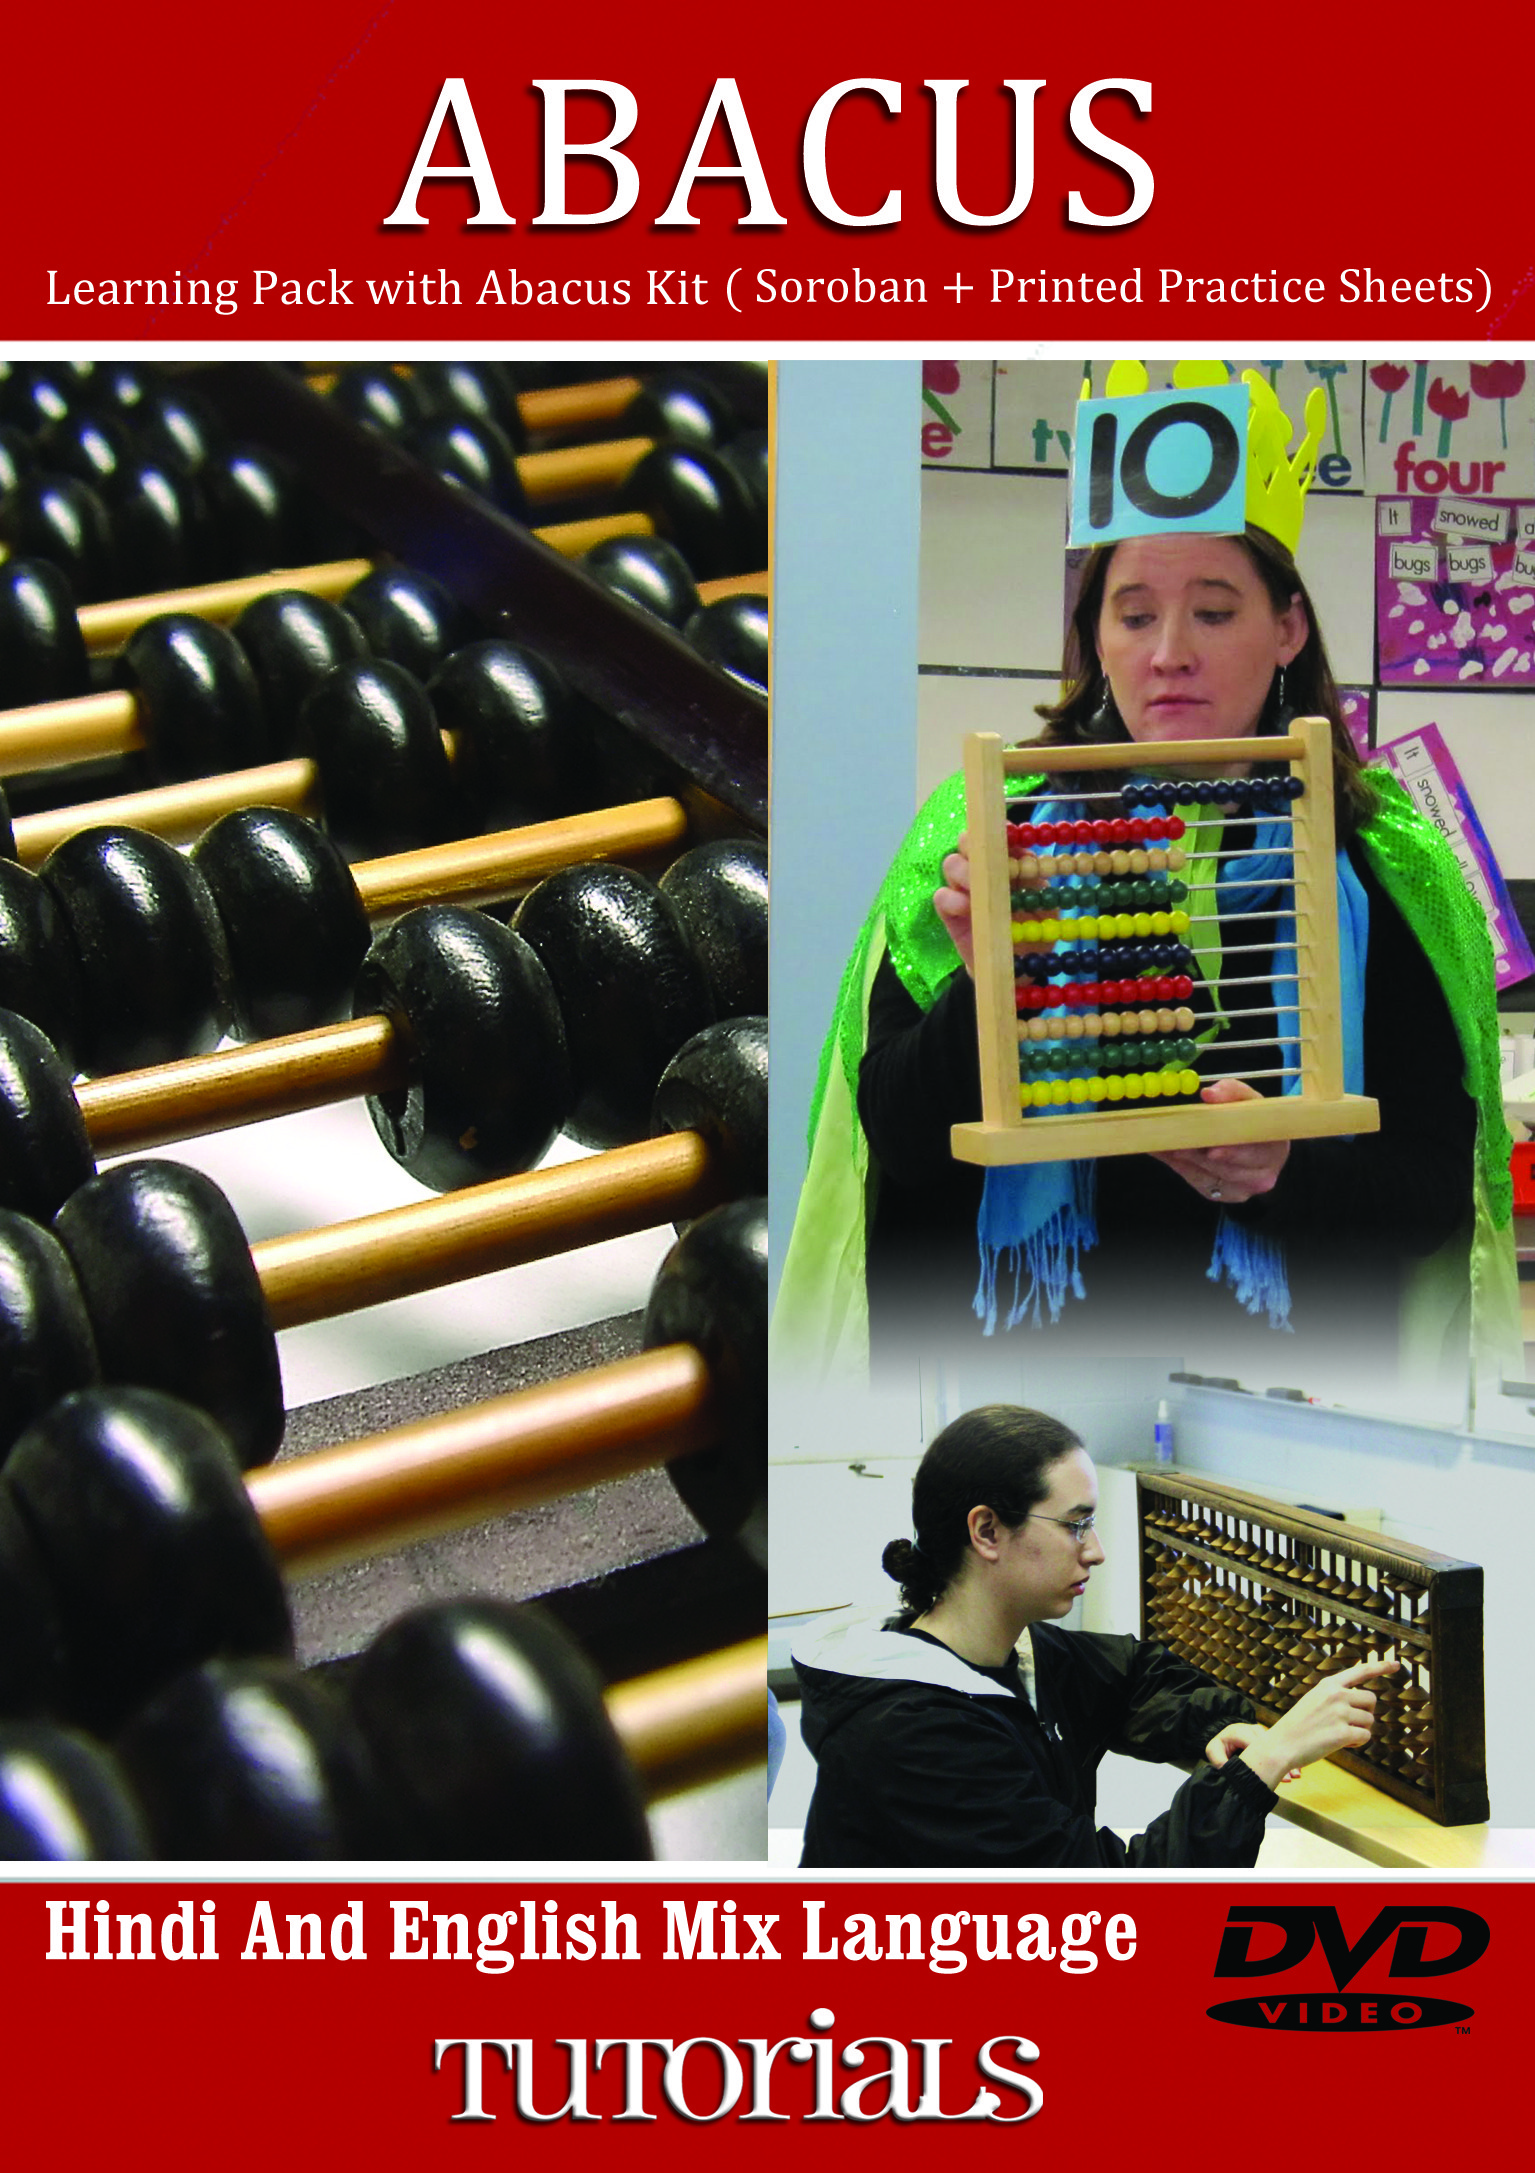 Lsoit Abacus with Abacus Kit Tutorials(DVD)